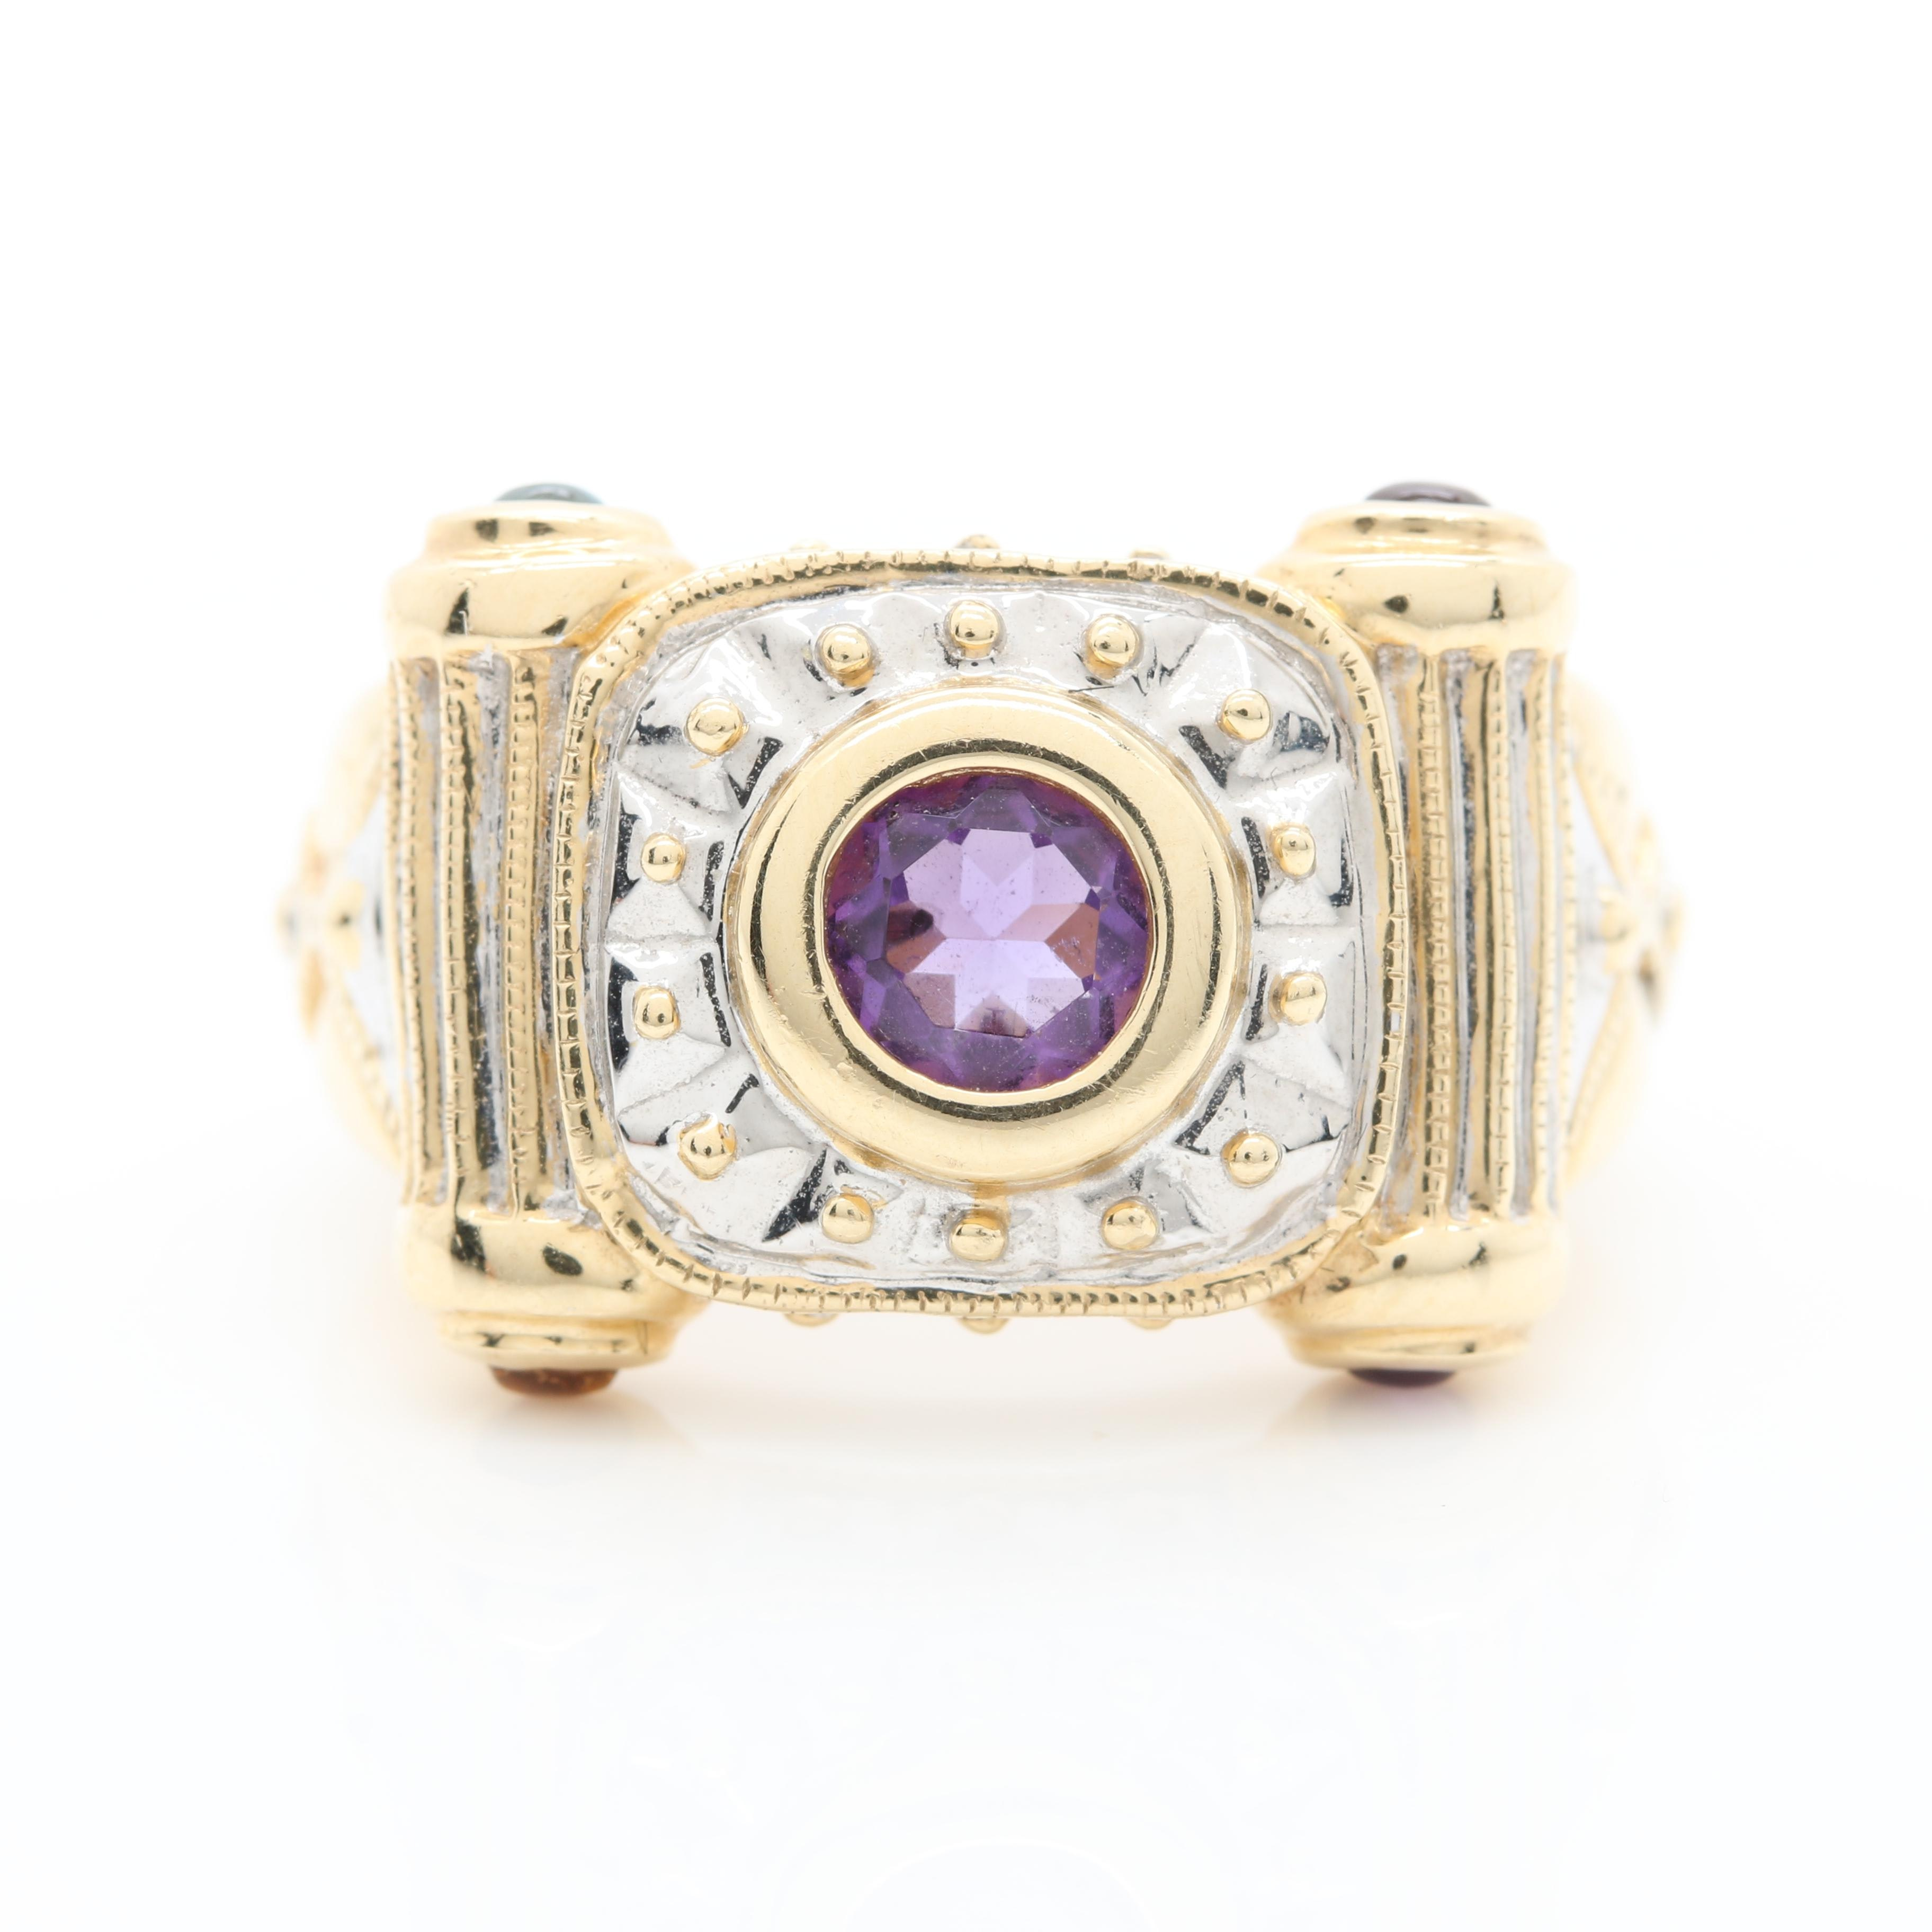 14K Yellow Gold Amethyst and Gemstone Ring With White Gold Accents